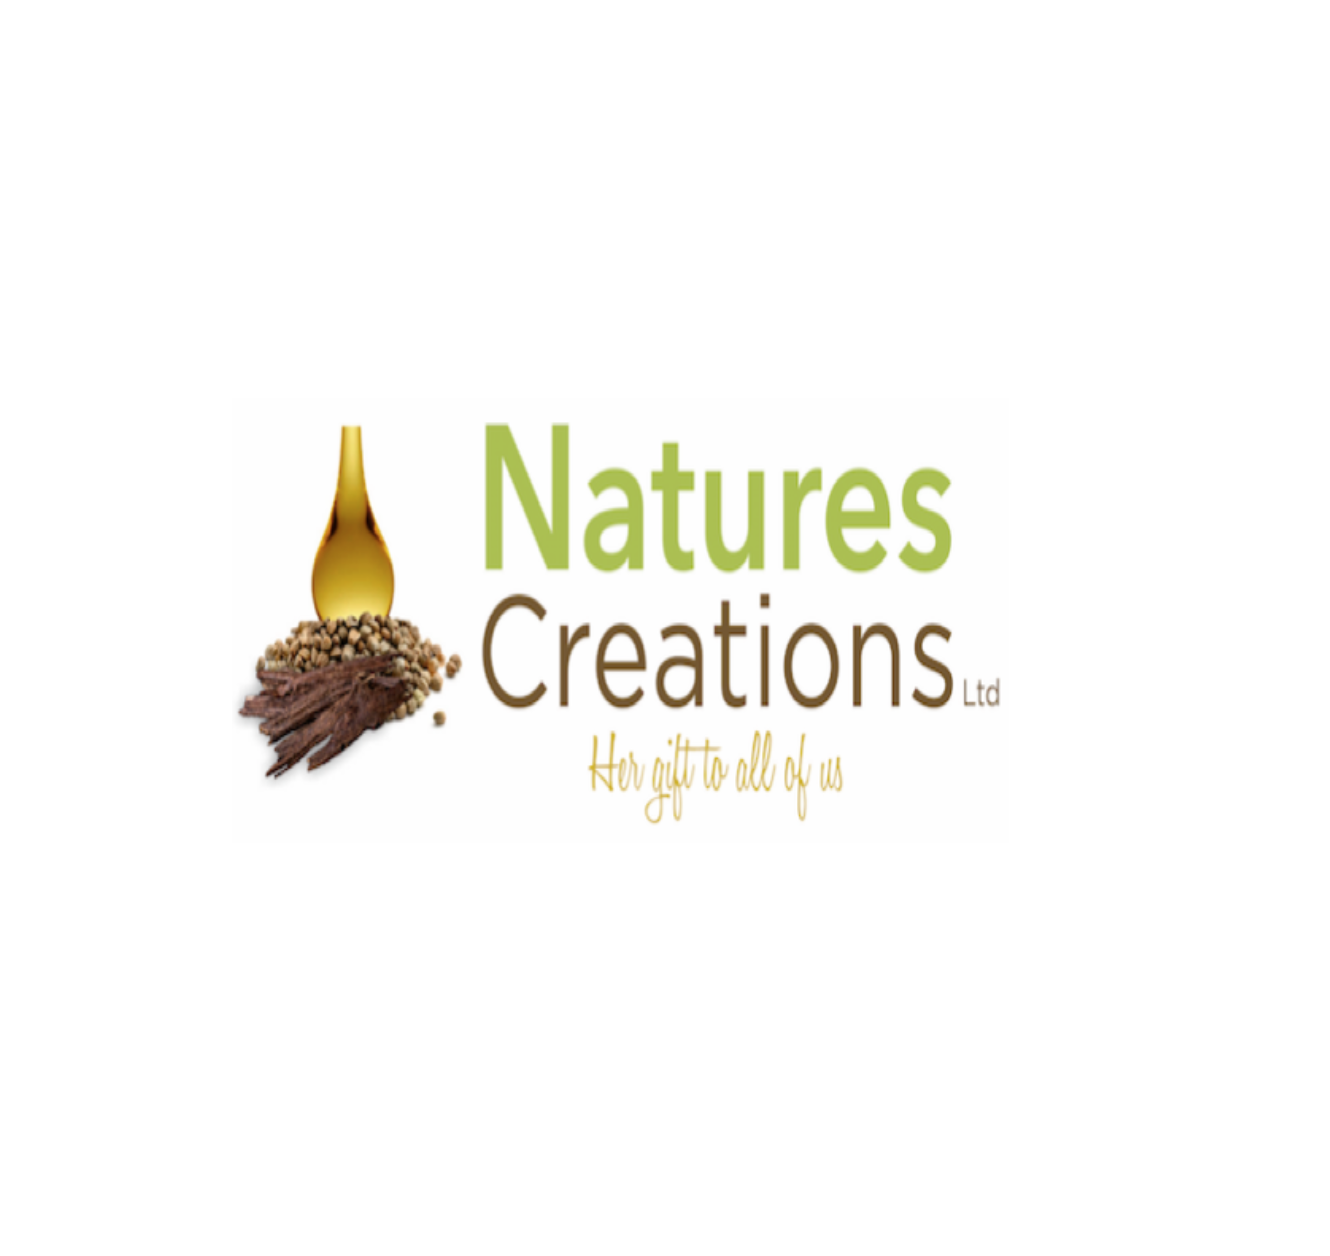 Natures Creations Ltd